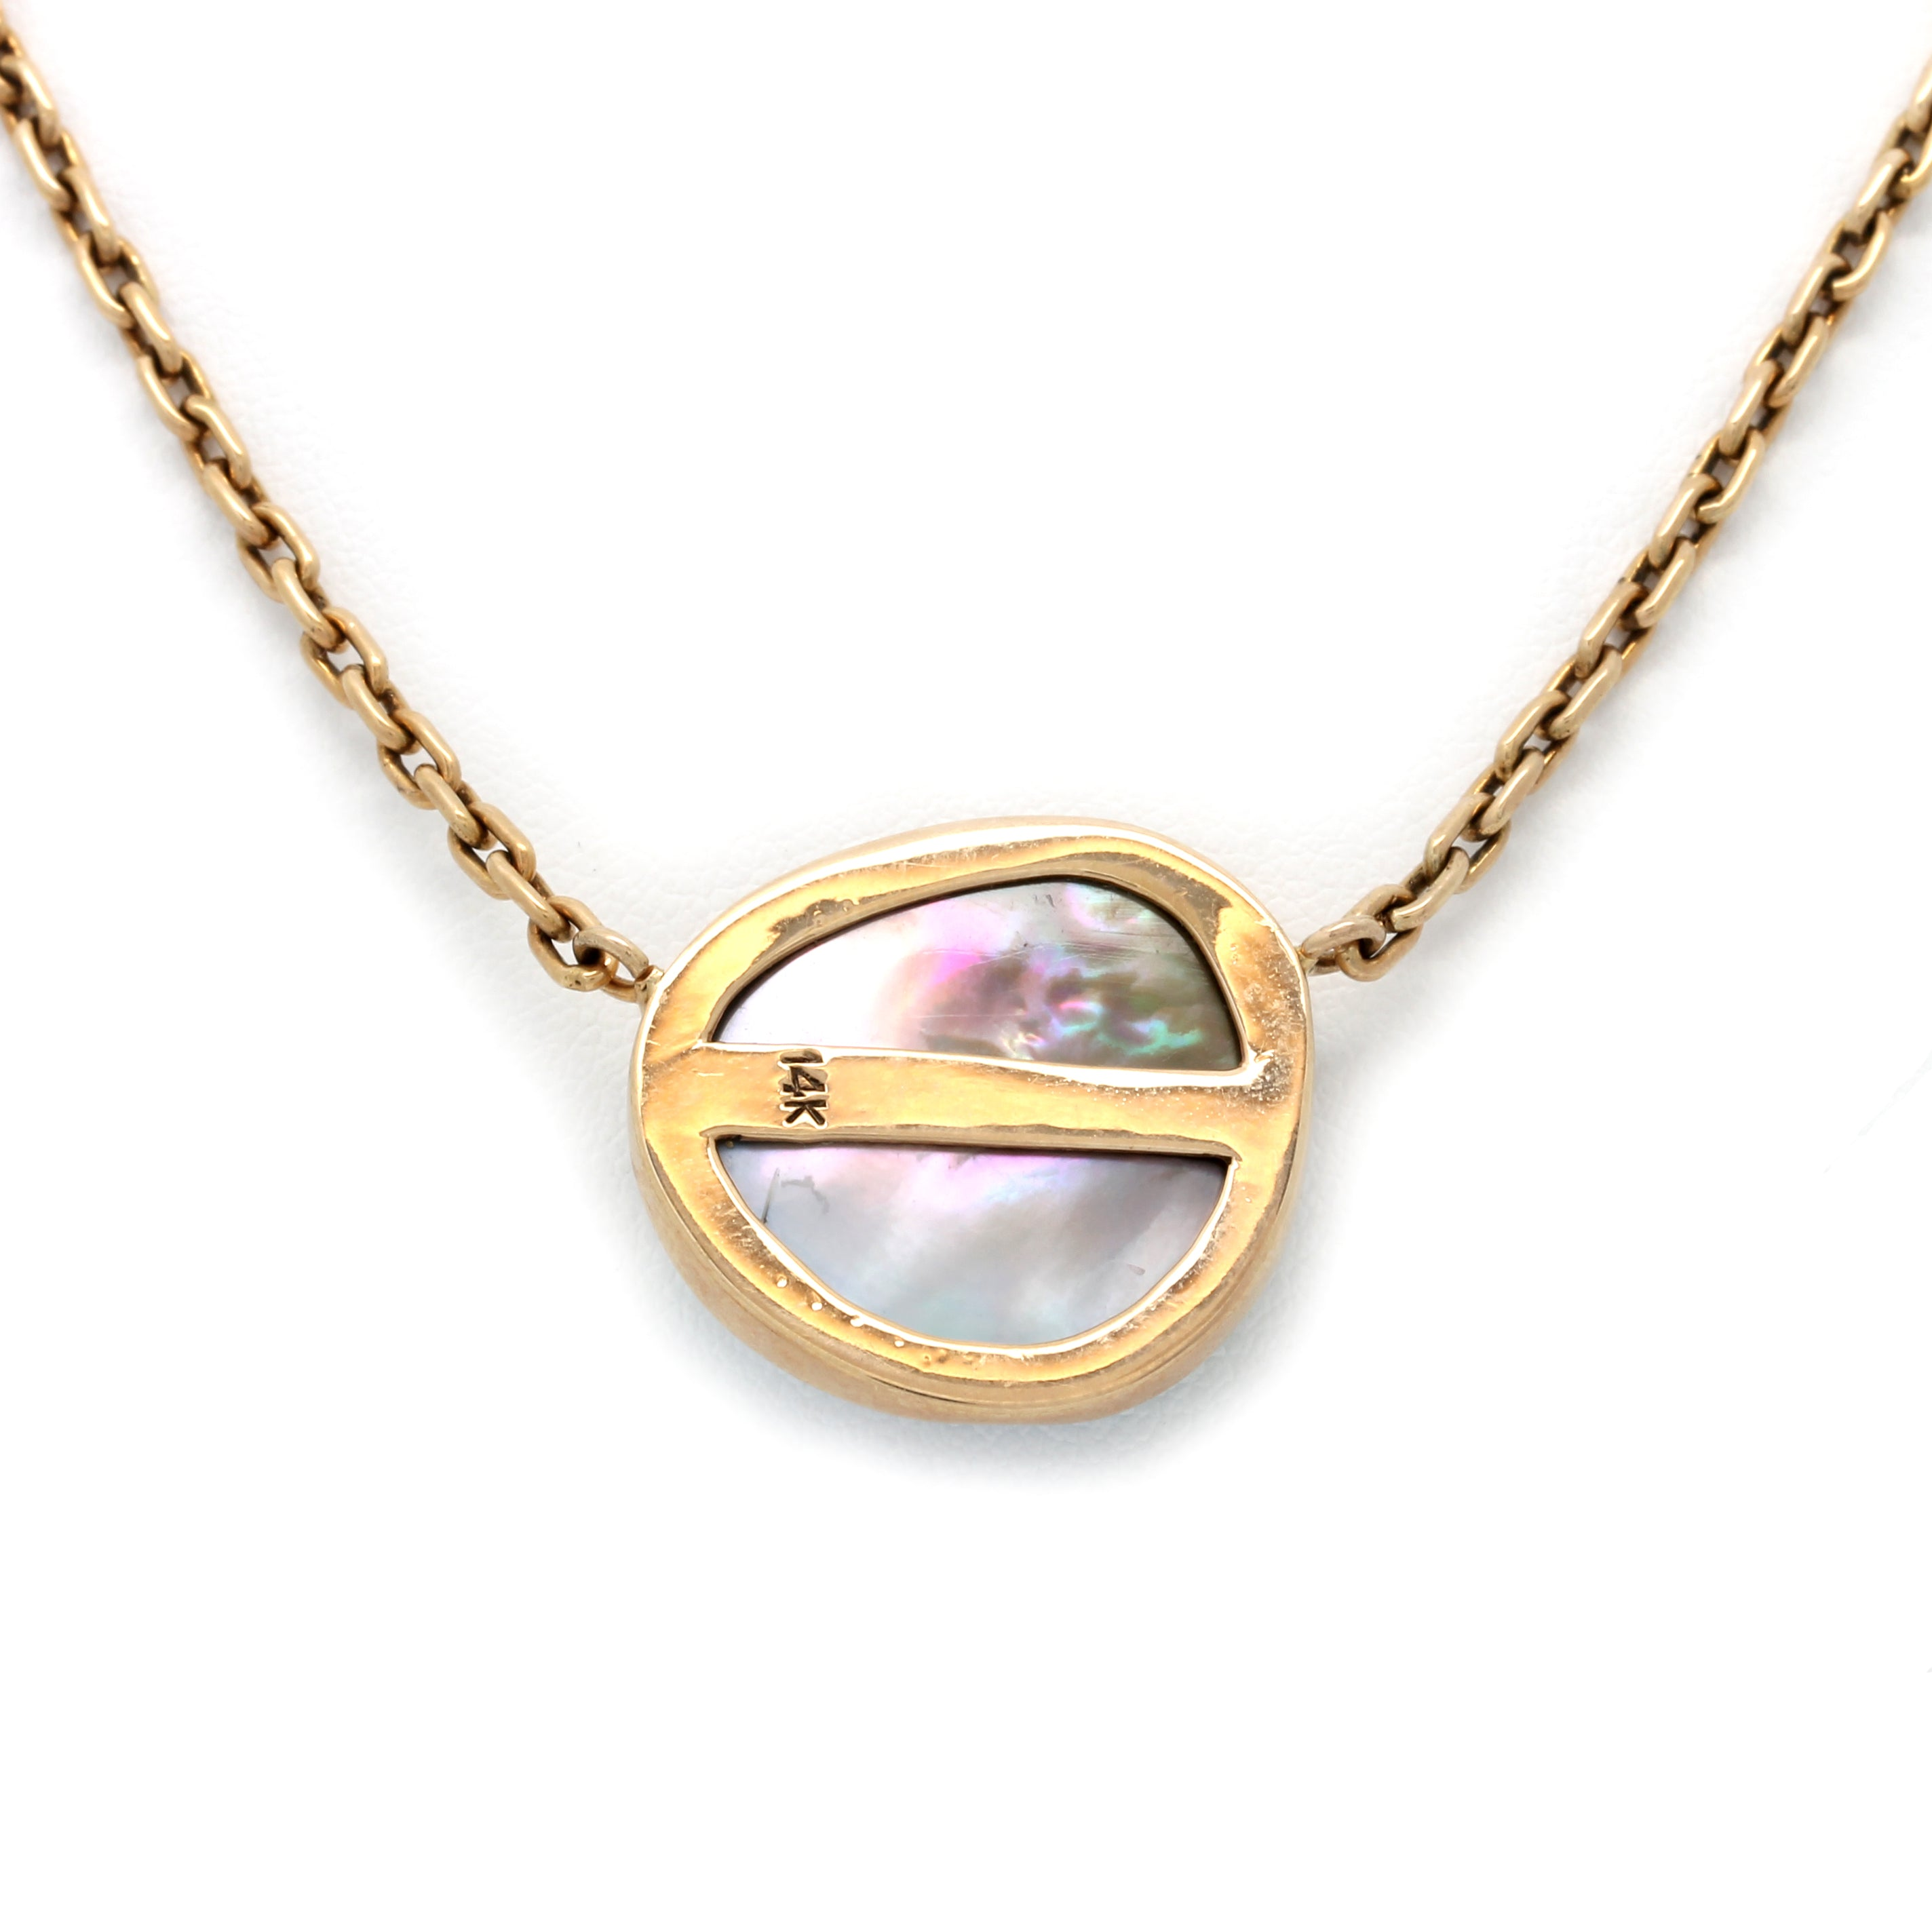 14K Yellow Gold Cortez Blister Pearl Necklace